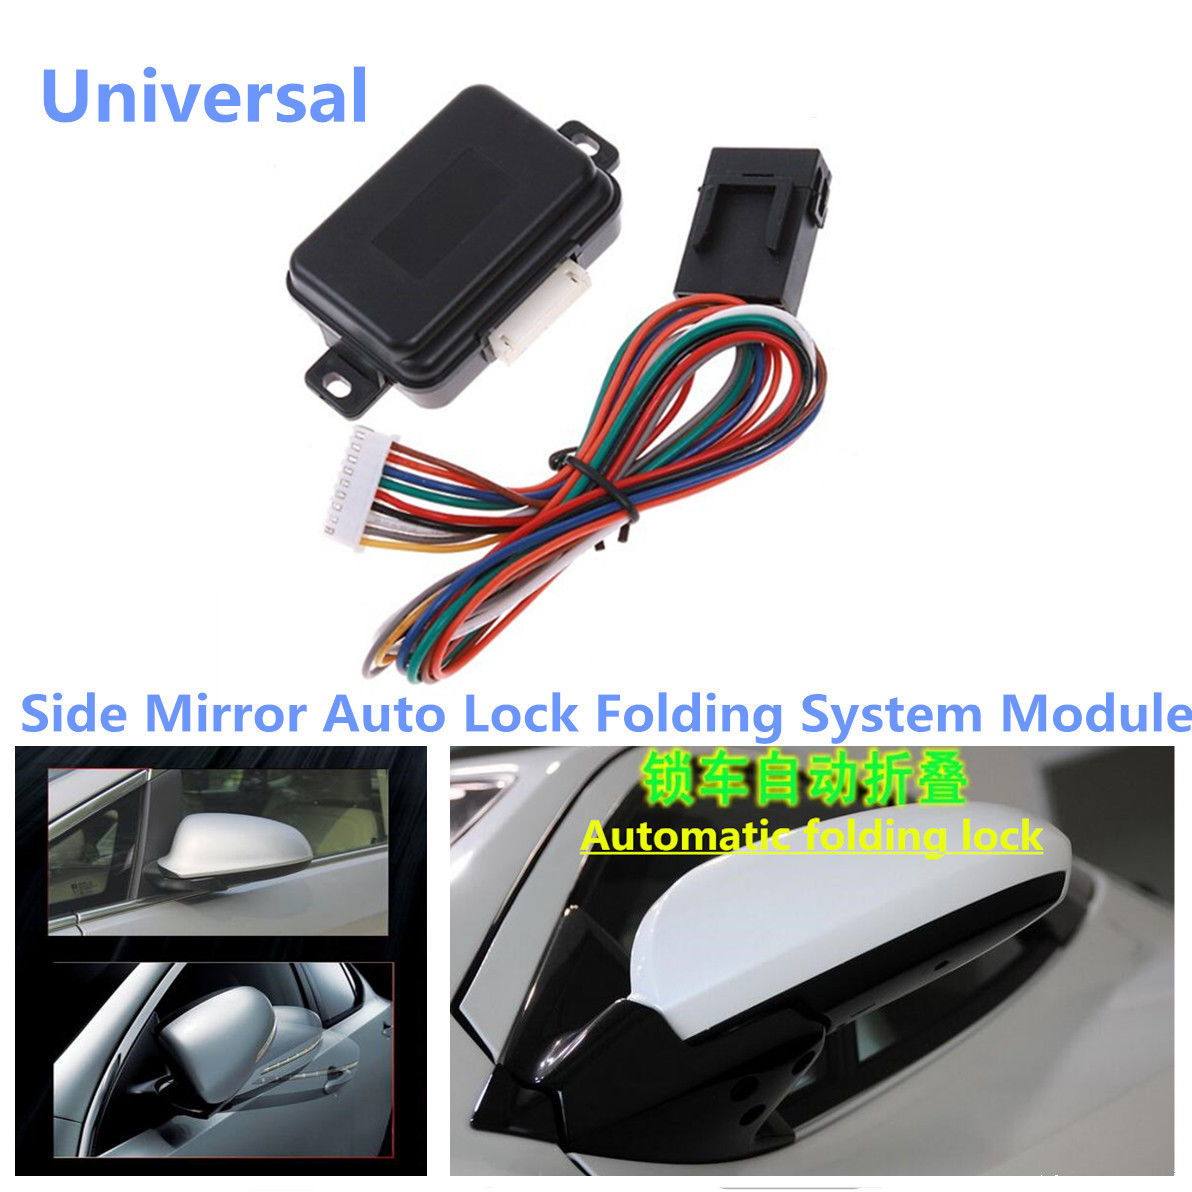 Universal Car Side Mirror Intelligent Auto Lock Folding System Modules Anti scratching Anti collision in Side Mirrors Accessories from Automobiles Motorcycles